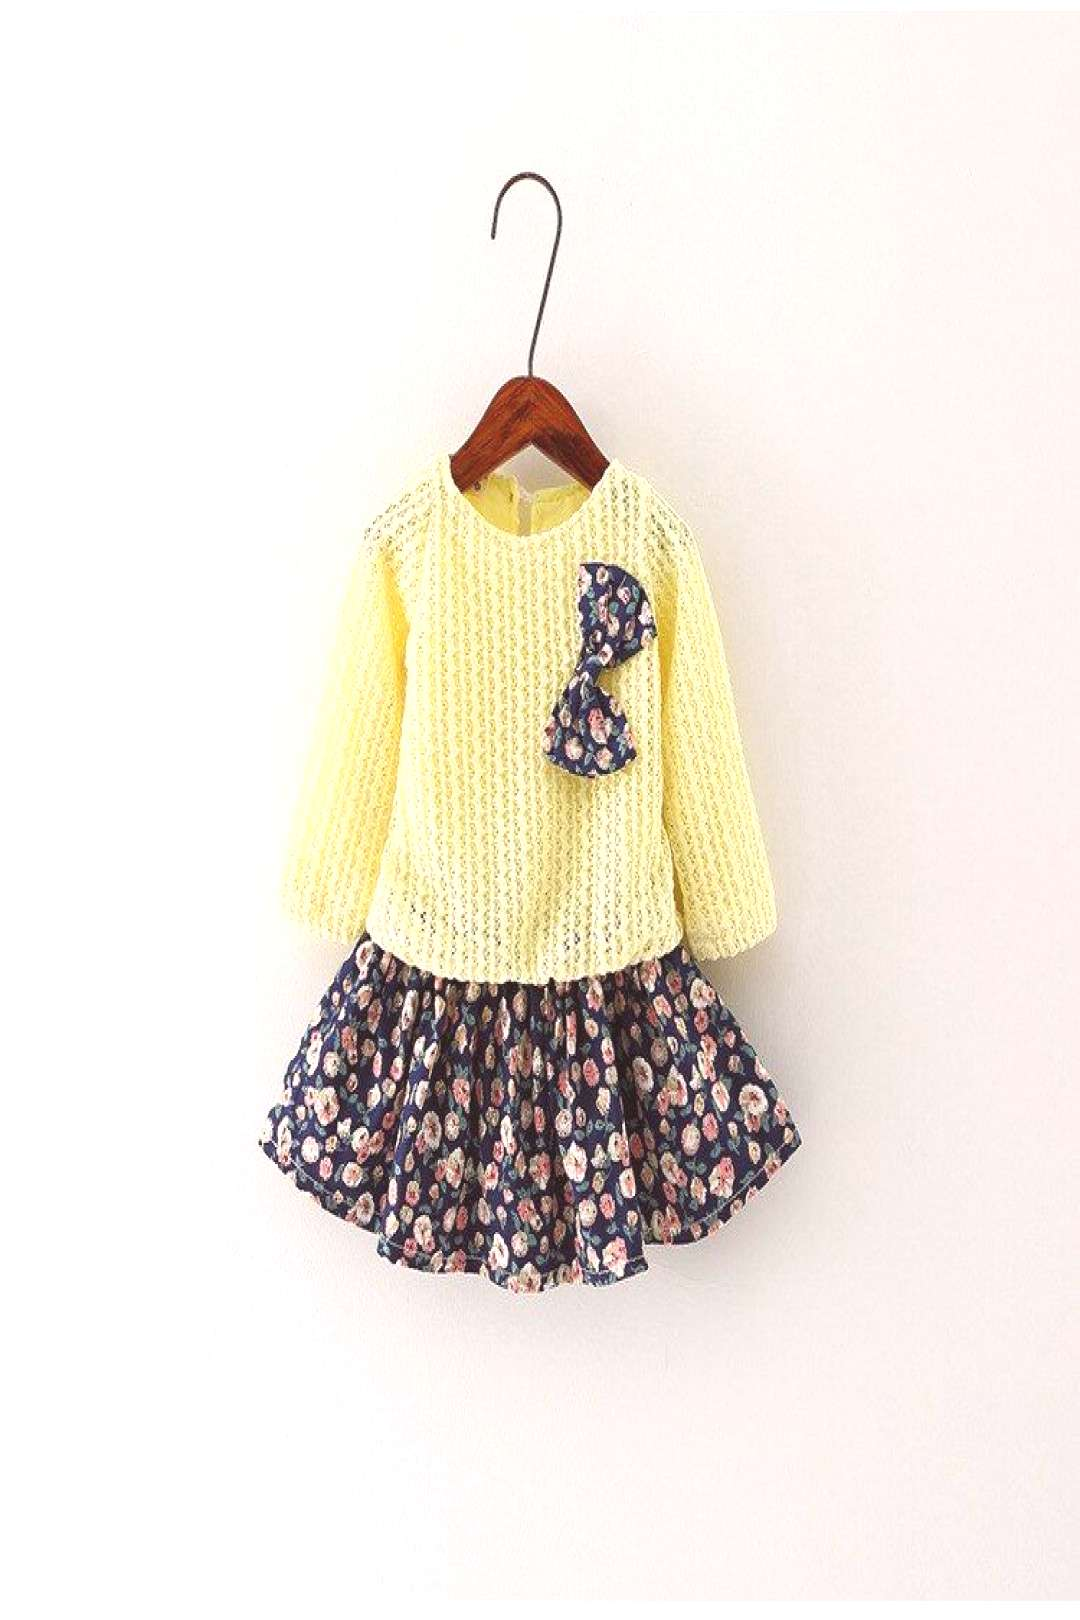 Summer Baby Girl Dress 2016 New Princess Dress Baby Girls Party for Toddler Girl Dresses Clothing L